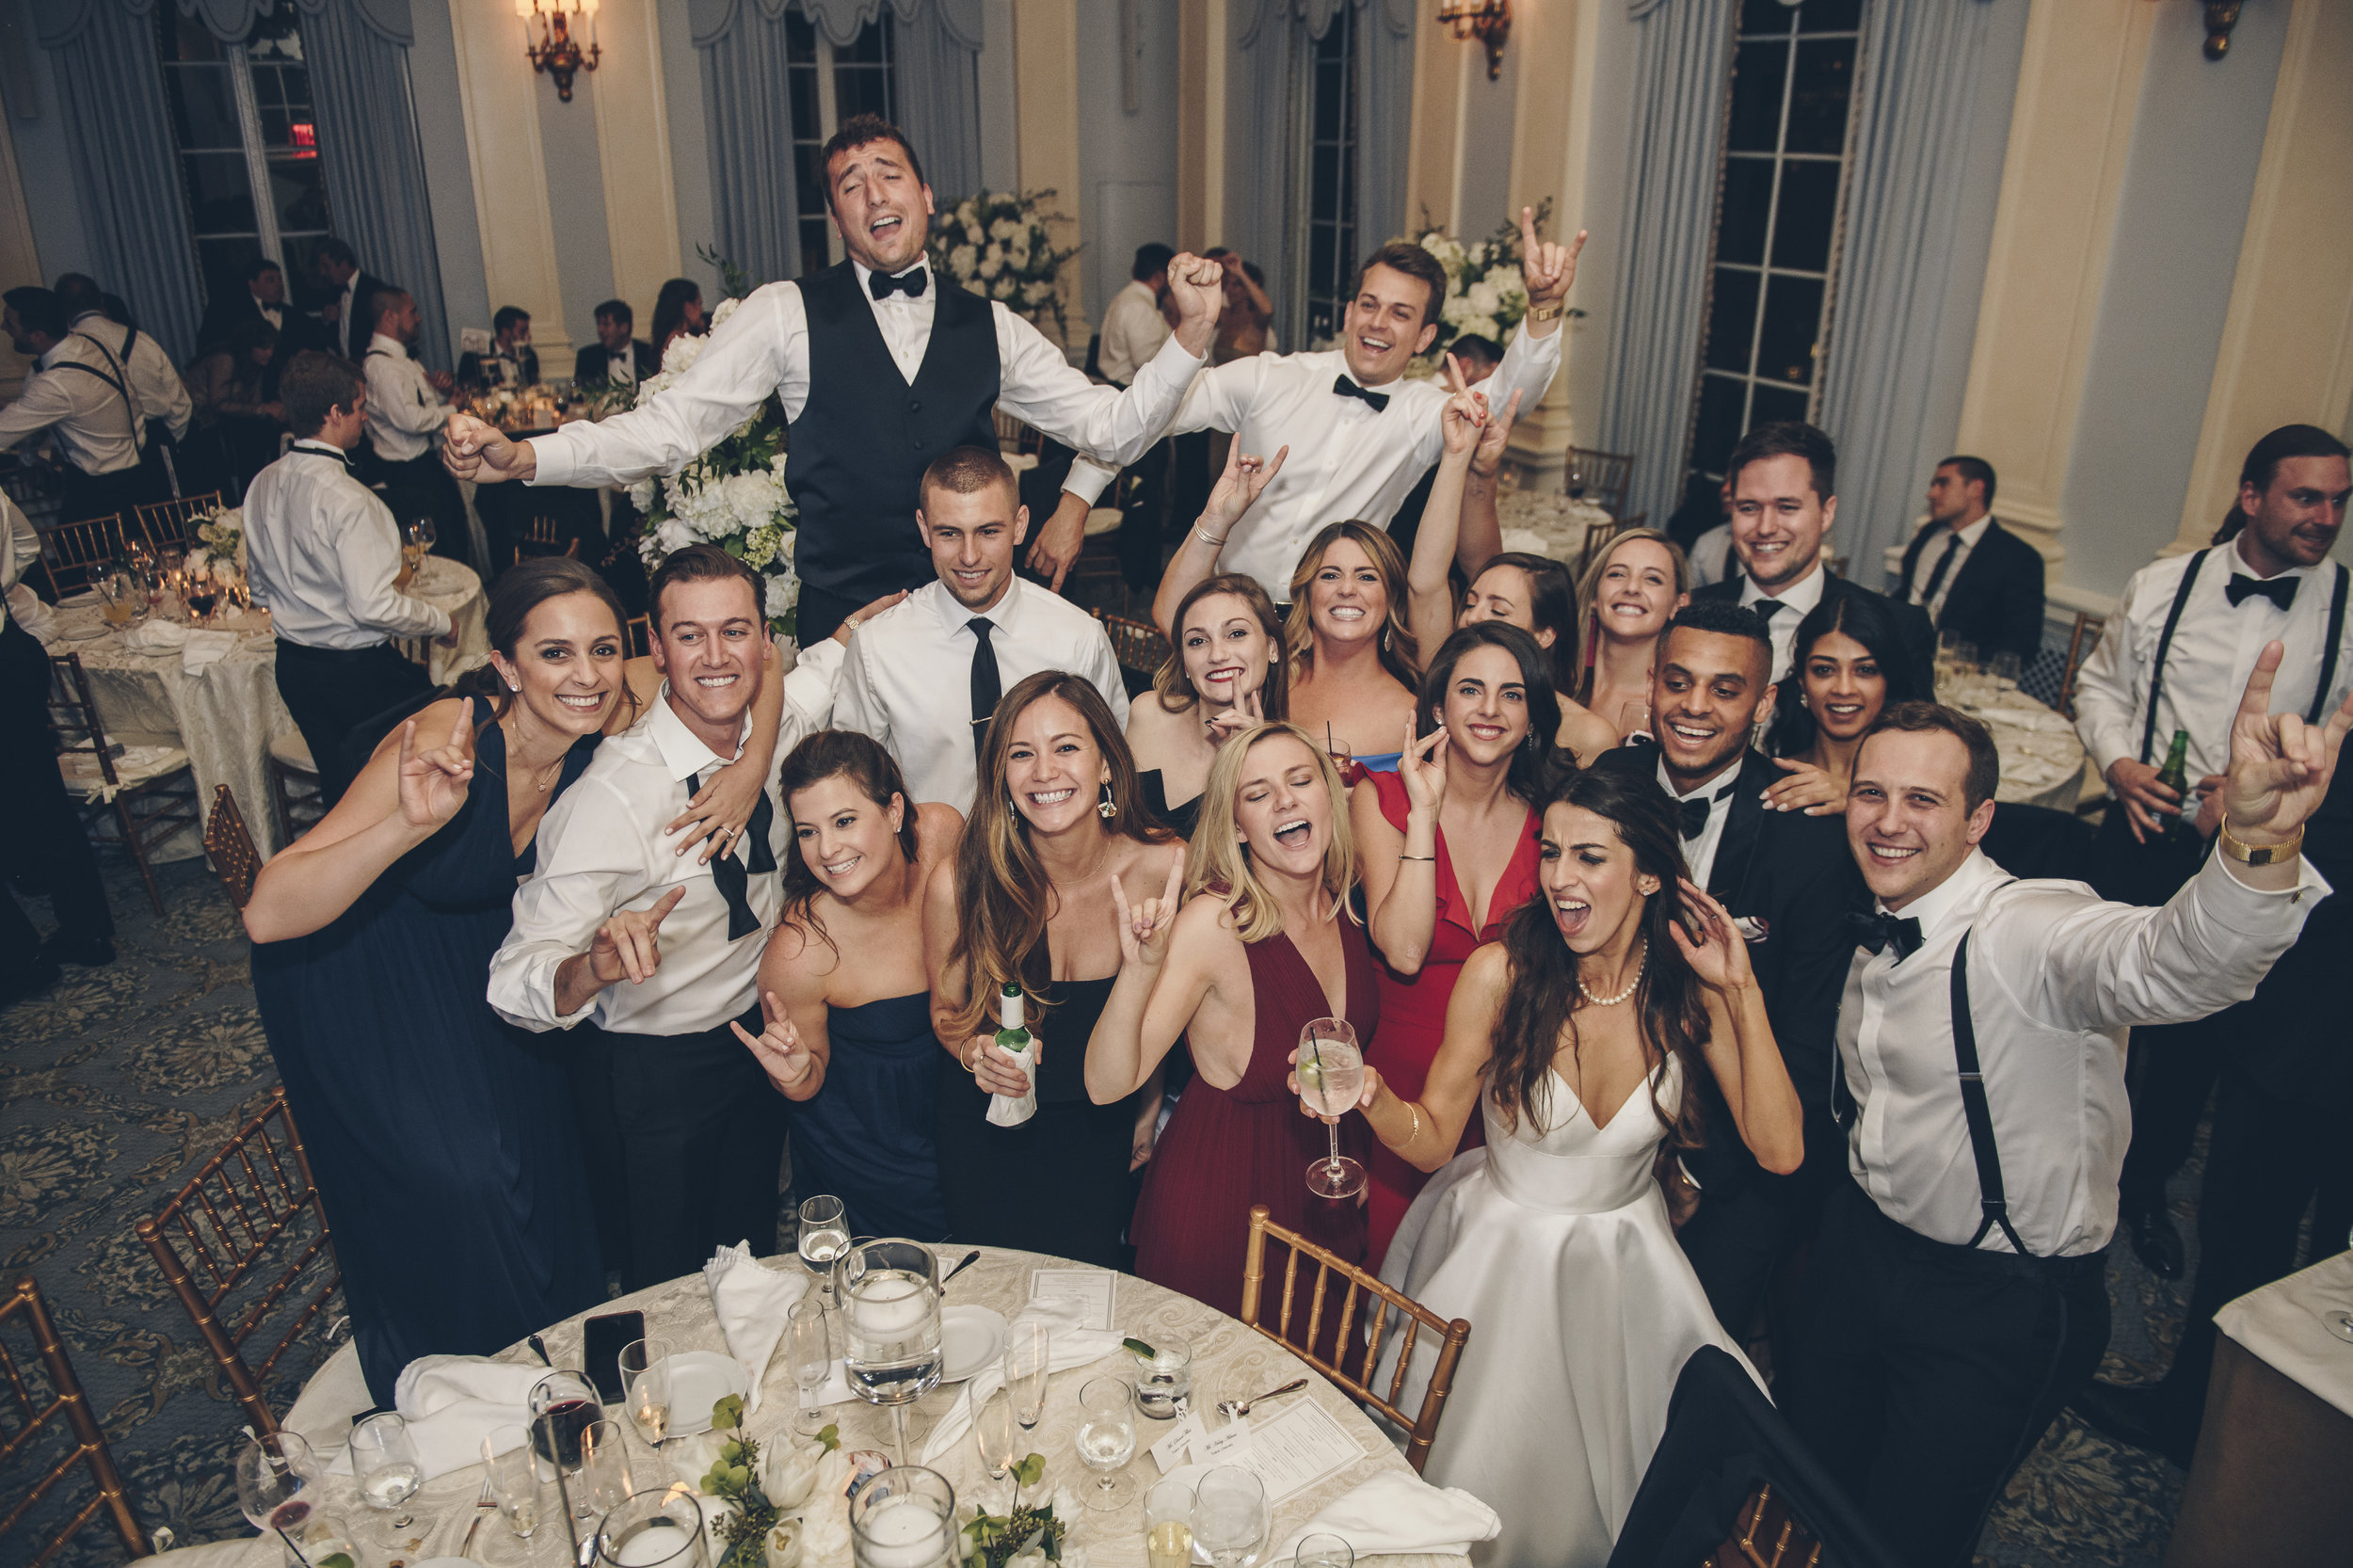 Courtney & Nick wedding at The Yale Club by Unveiled-Weddings.com